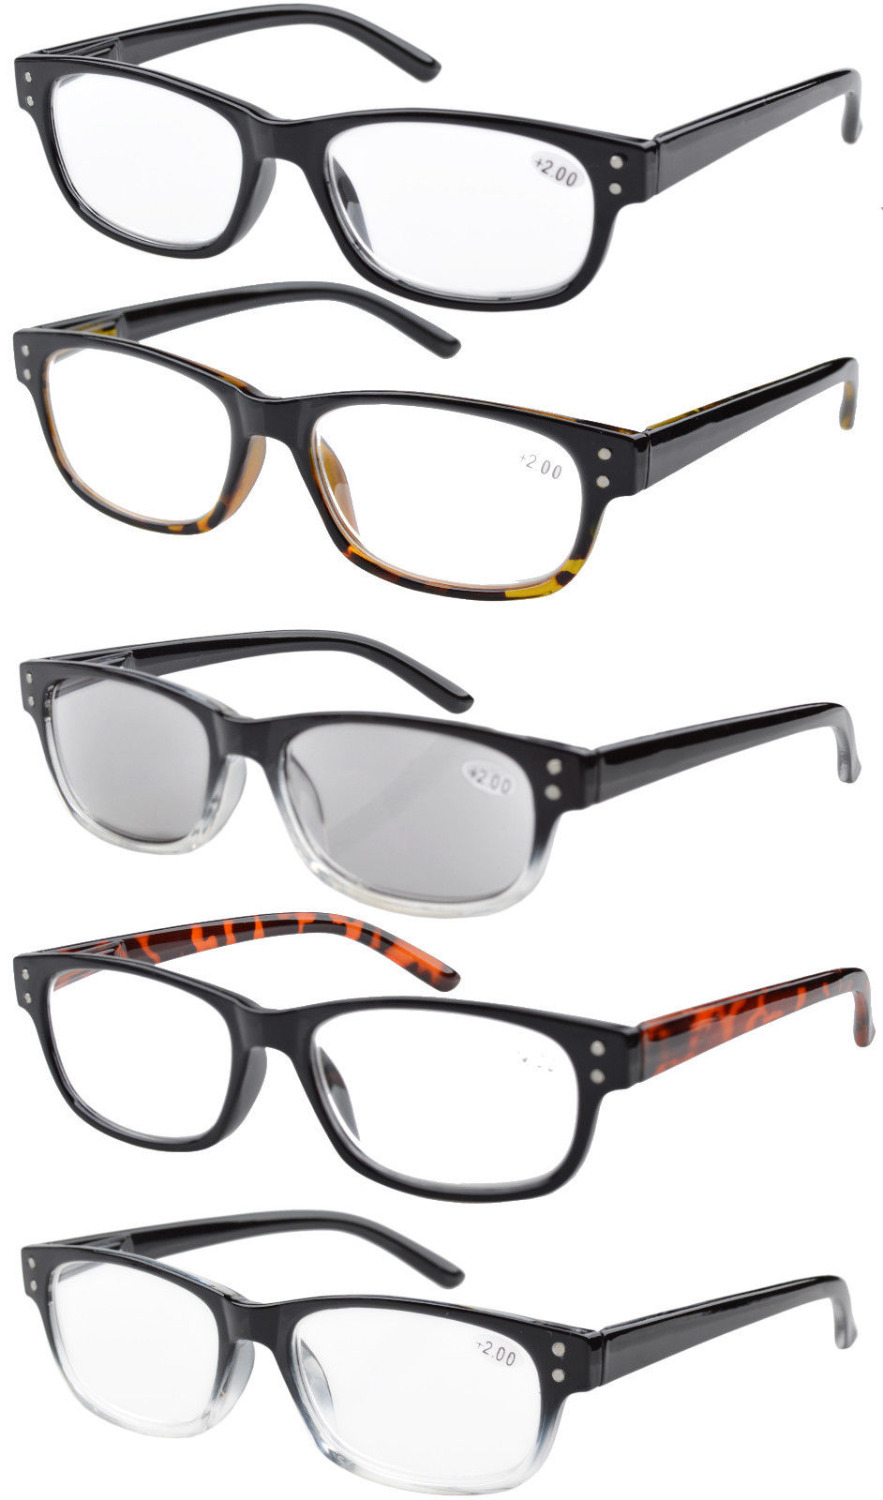 Ship from USA 5-pack Spring Hinges Reading Glasses Sun Readers R019-Mix-USAFBA +1.0/1.25/1.5/1.75/2/2.25/2.5/2.75/3/3.5/4(China (Mainland))